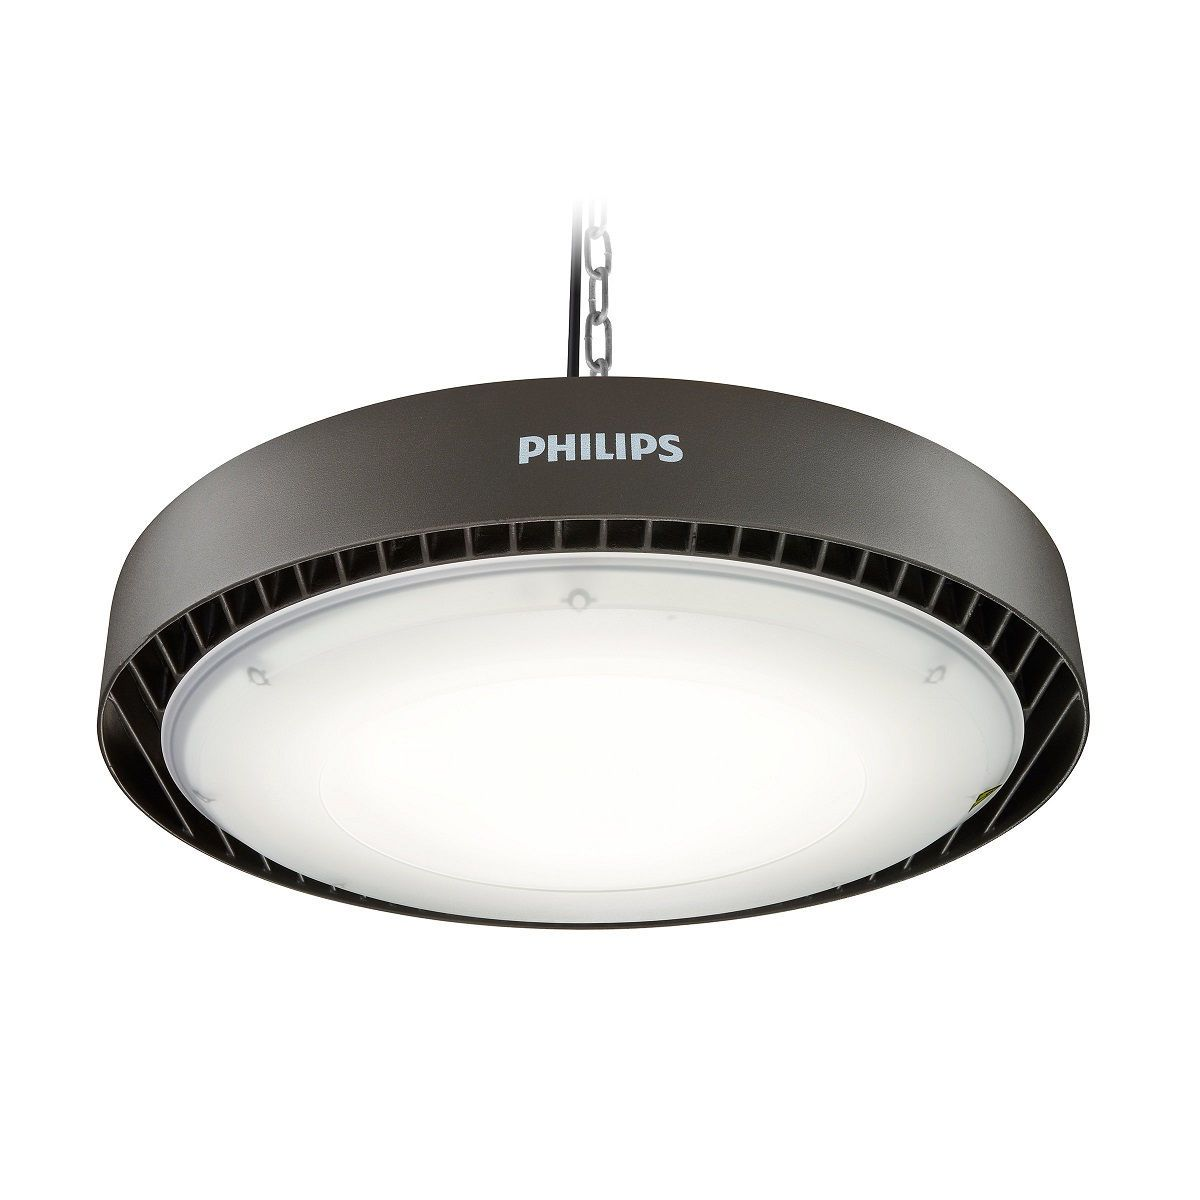 Philips High Bay By021p Led200s840 190w 4000k 20000lm 100⁰